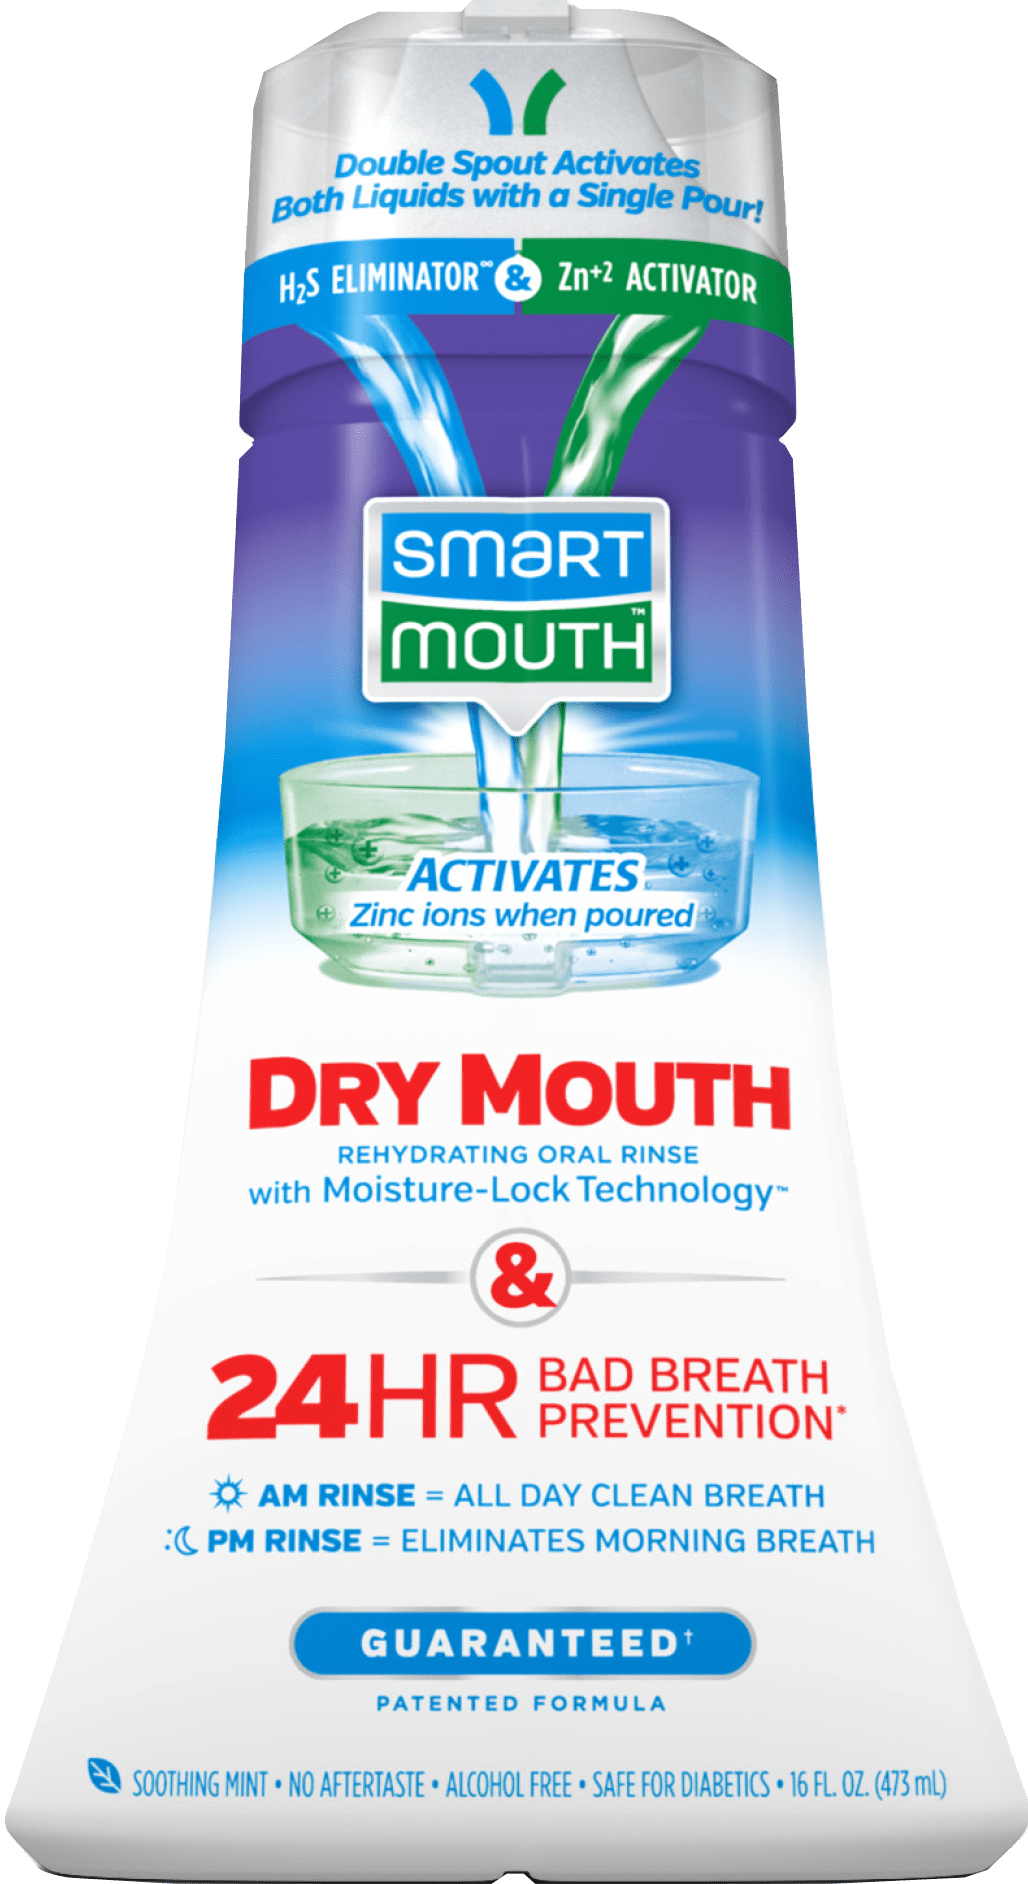 Dry Mouth Mouthwash Activated Oral Rinse Relieves Dry